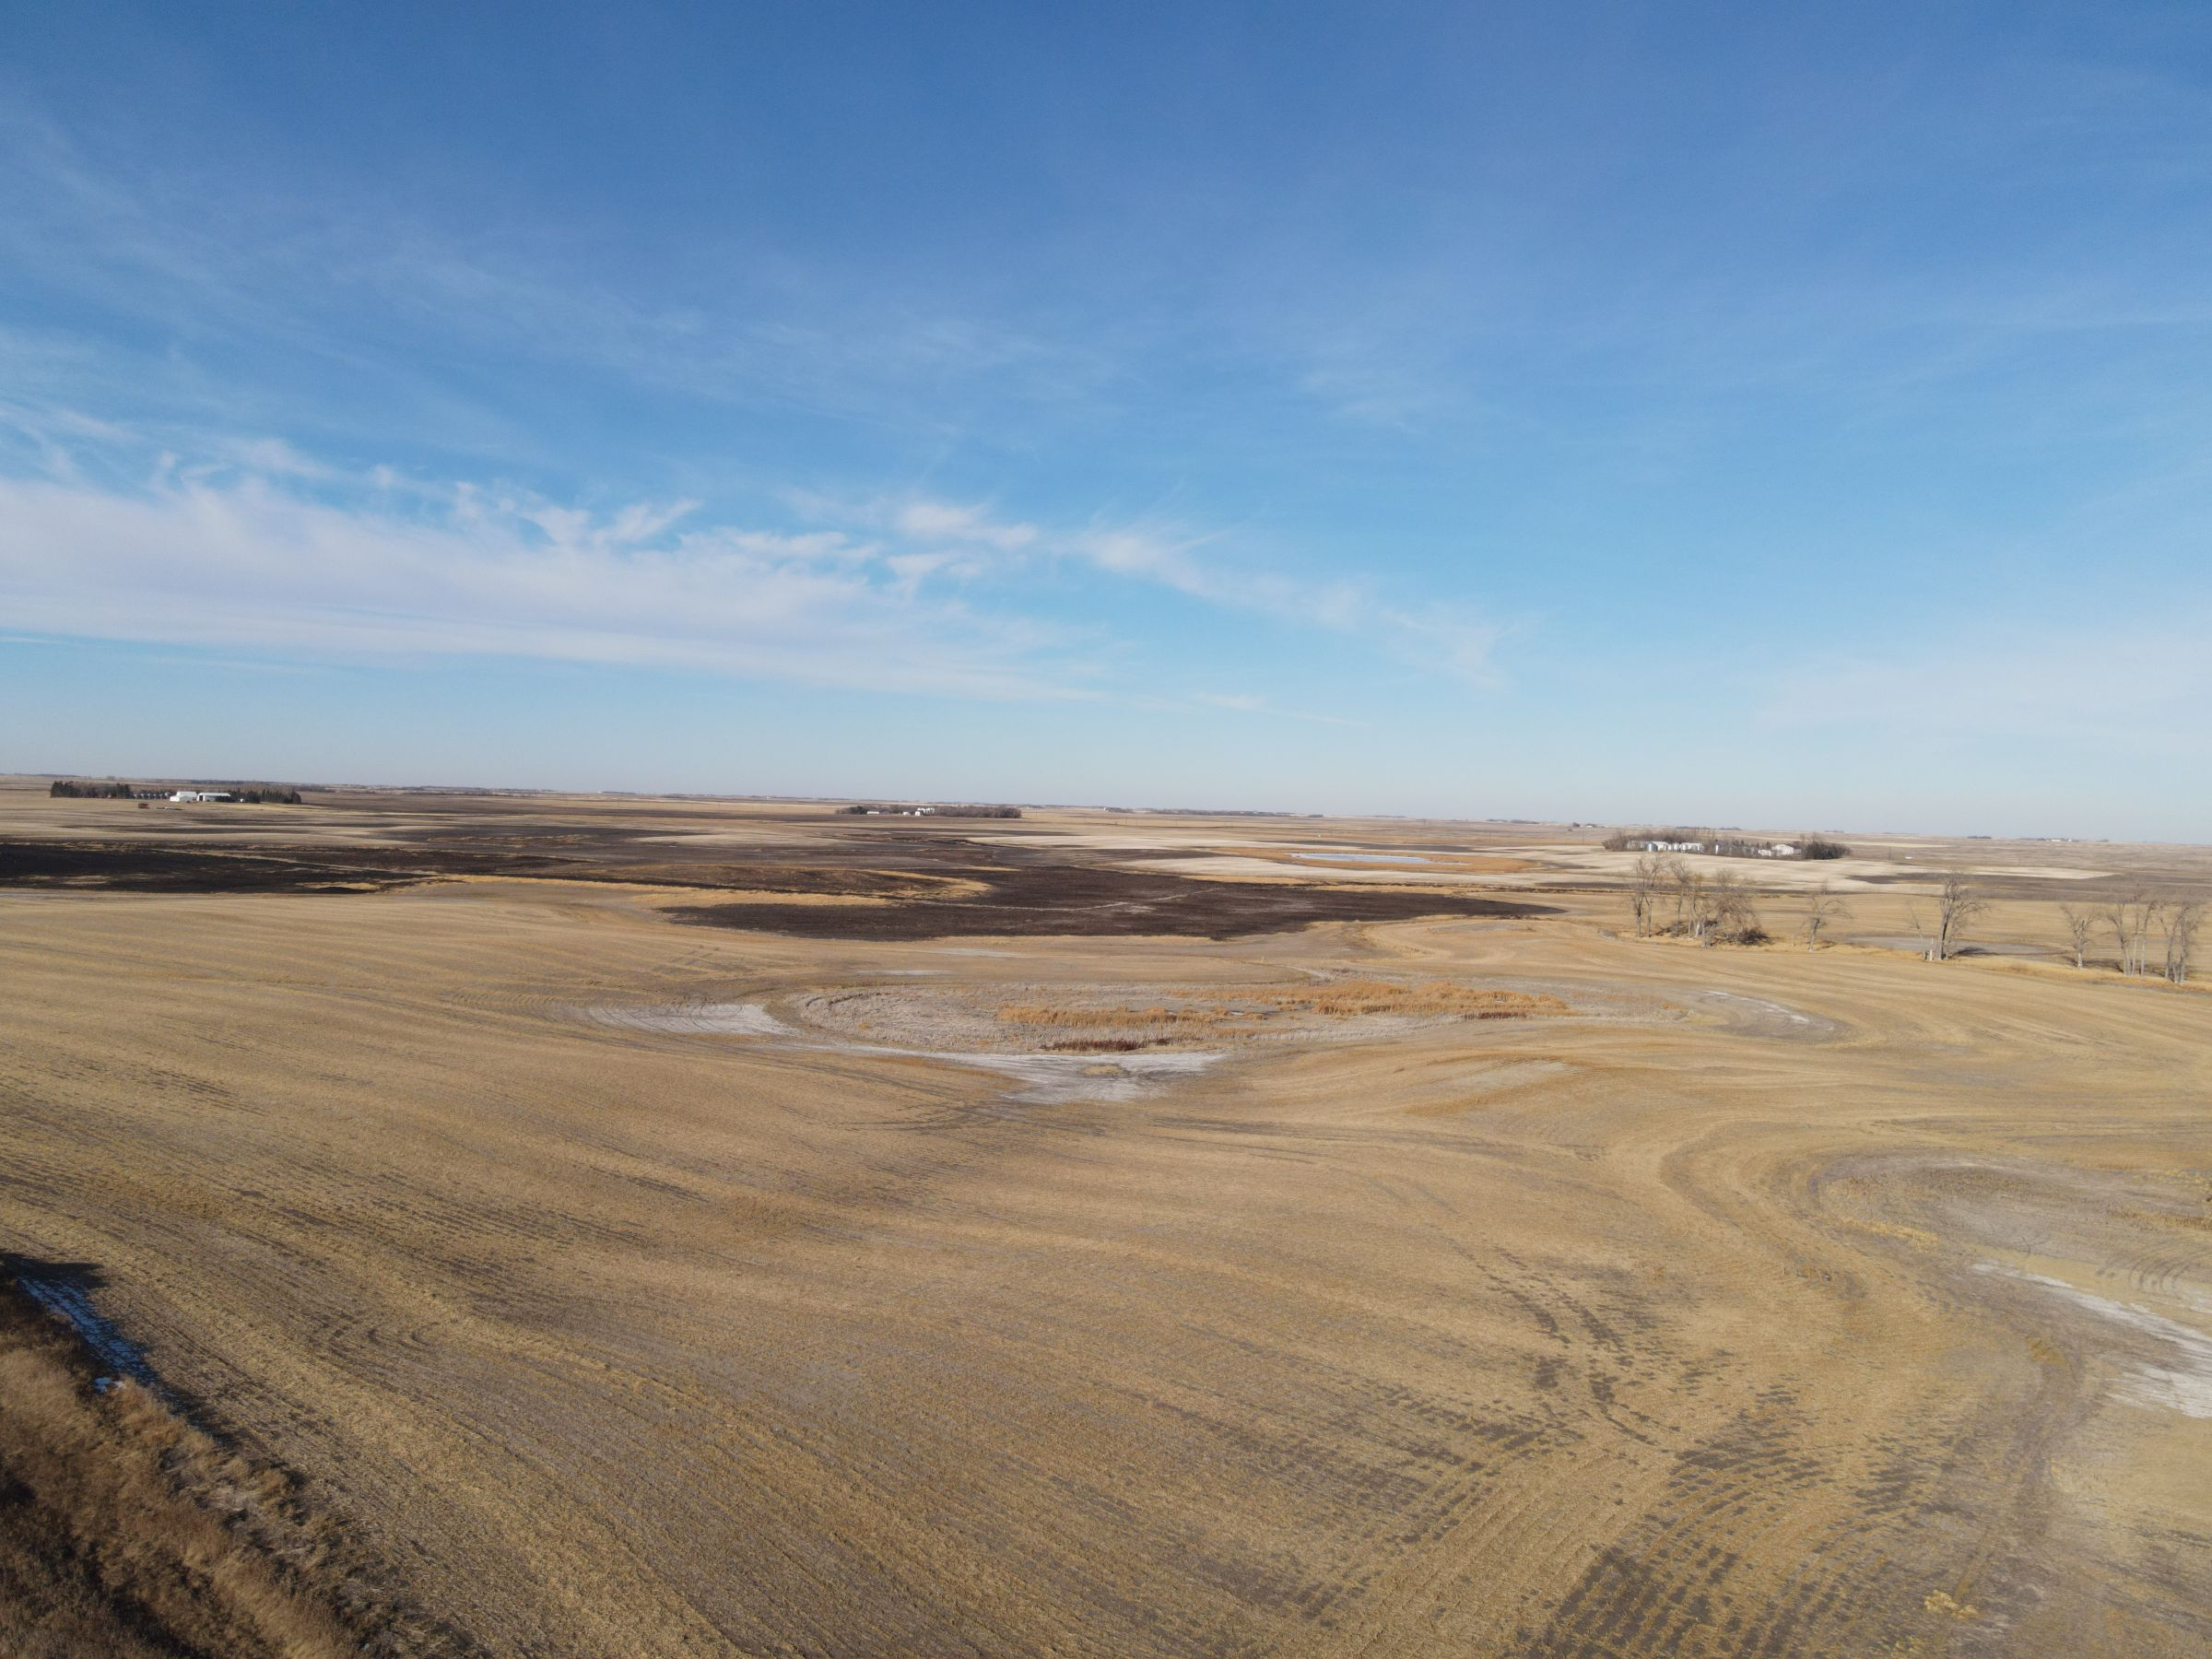 land-ramsey-county-north-dakota-157-acres-listing-number-15291-1-2020-12-11-153828.JPG